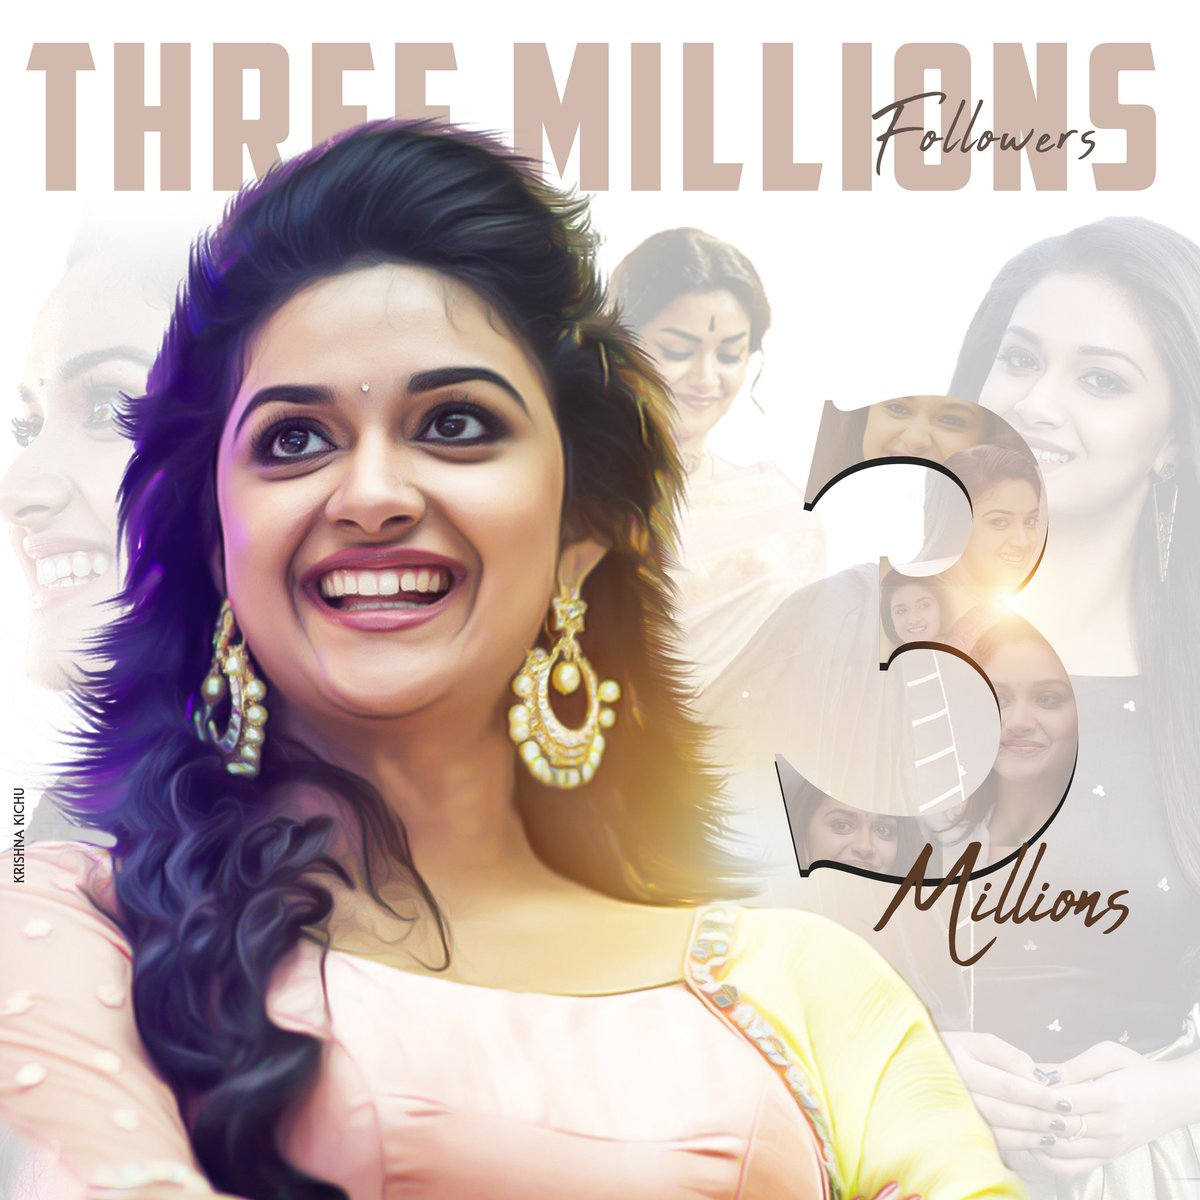 Our @KeerthyOfficial reached 3M followers in Twitter #KeerthySuresh pic.twitter.com/TNy7KhDTSp